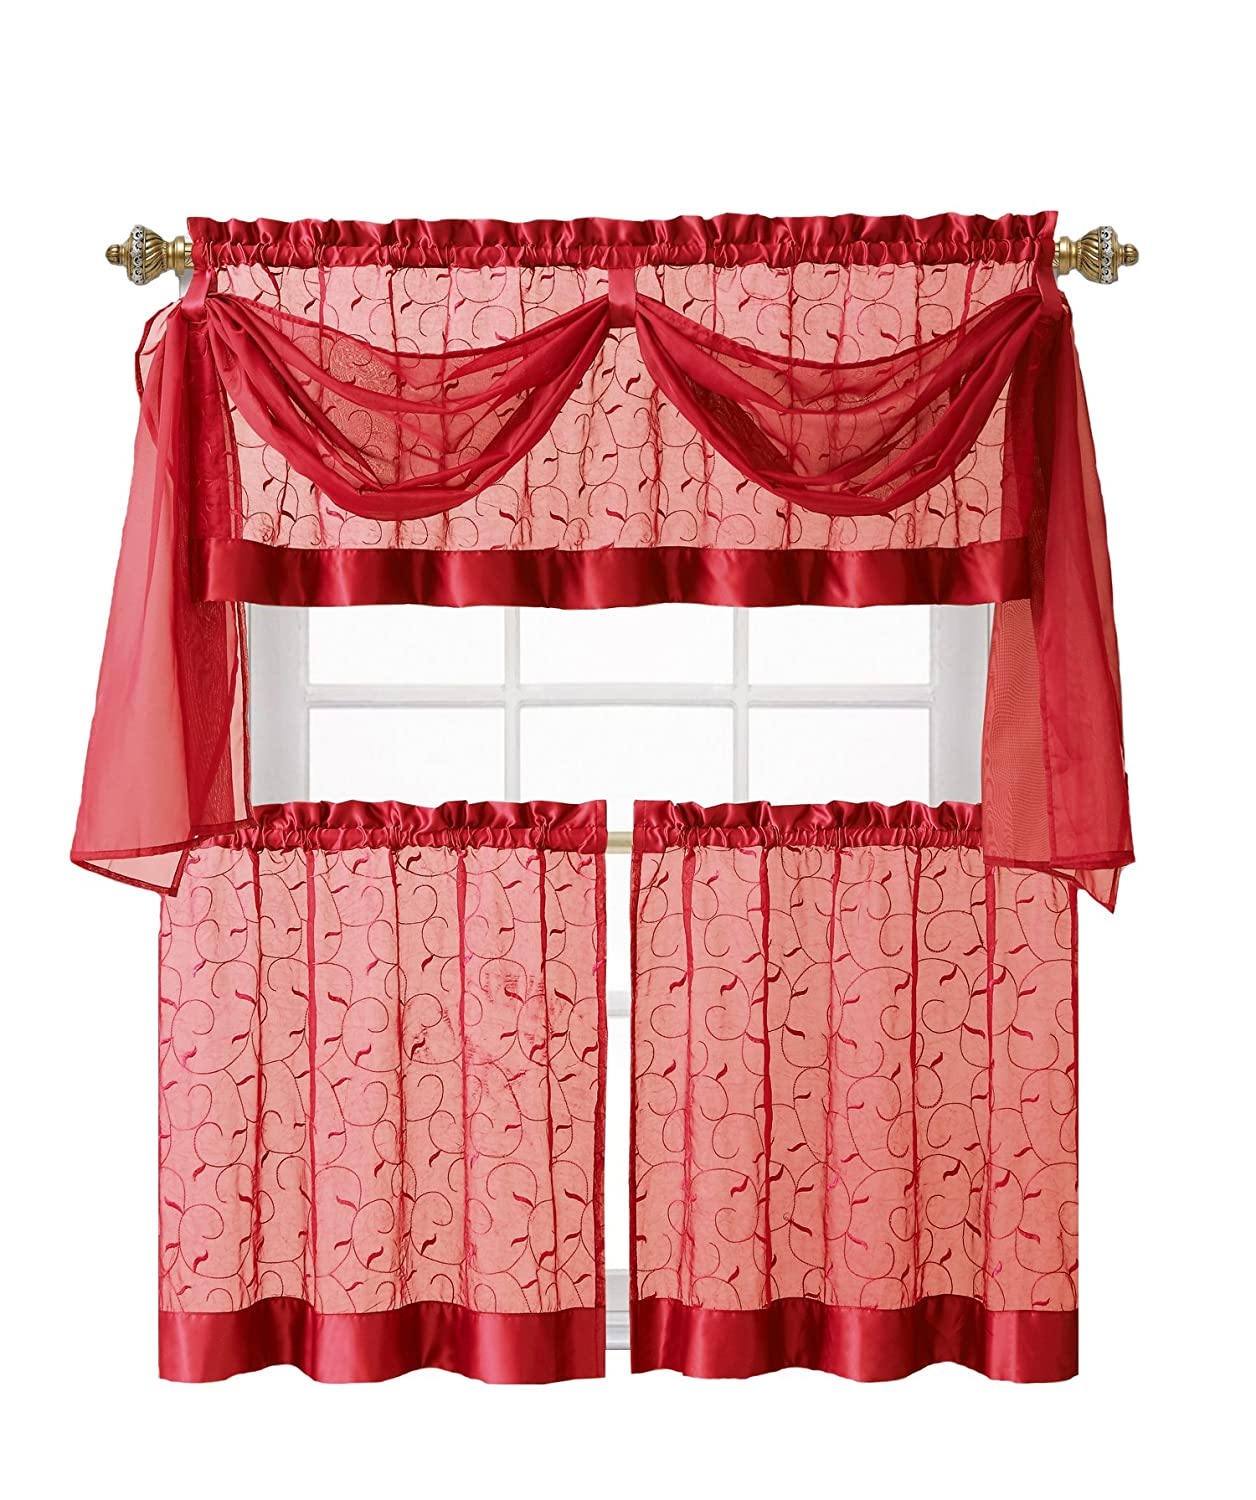 Luxurious Embroidered Sheer Voile Kitchen Curtain Set